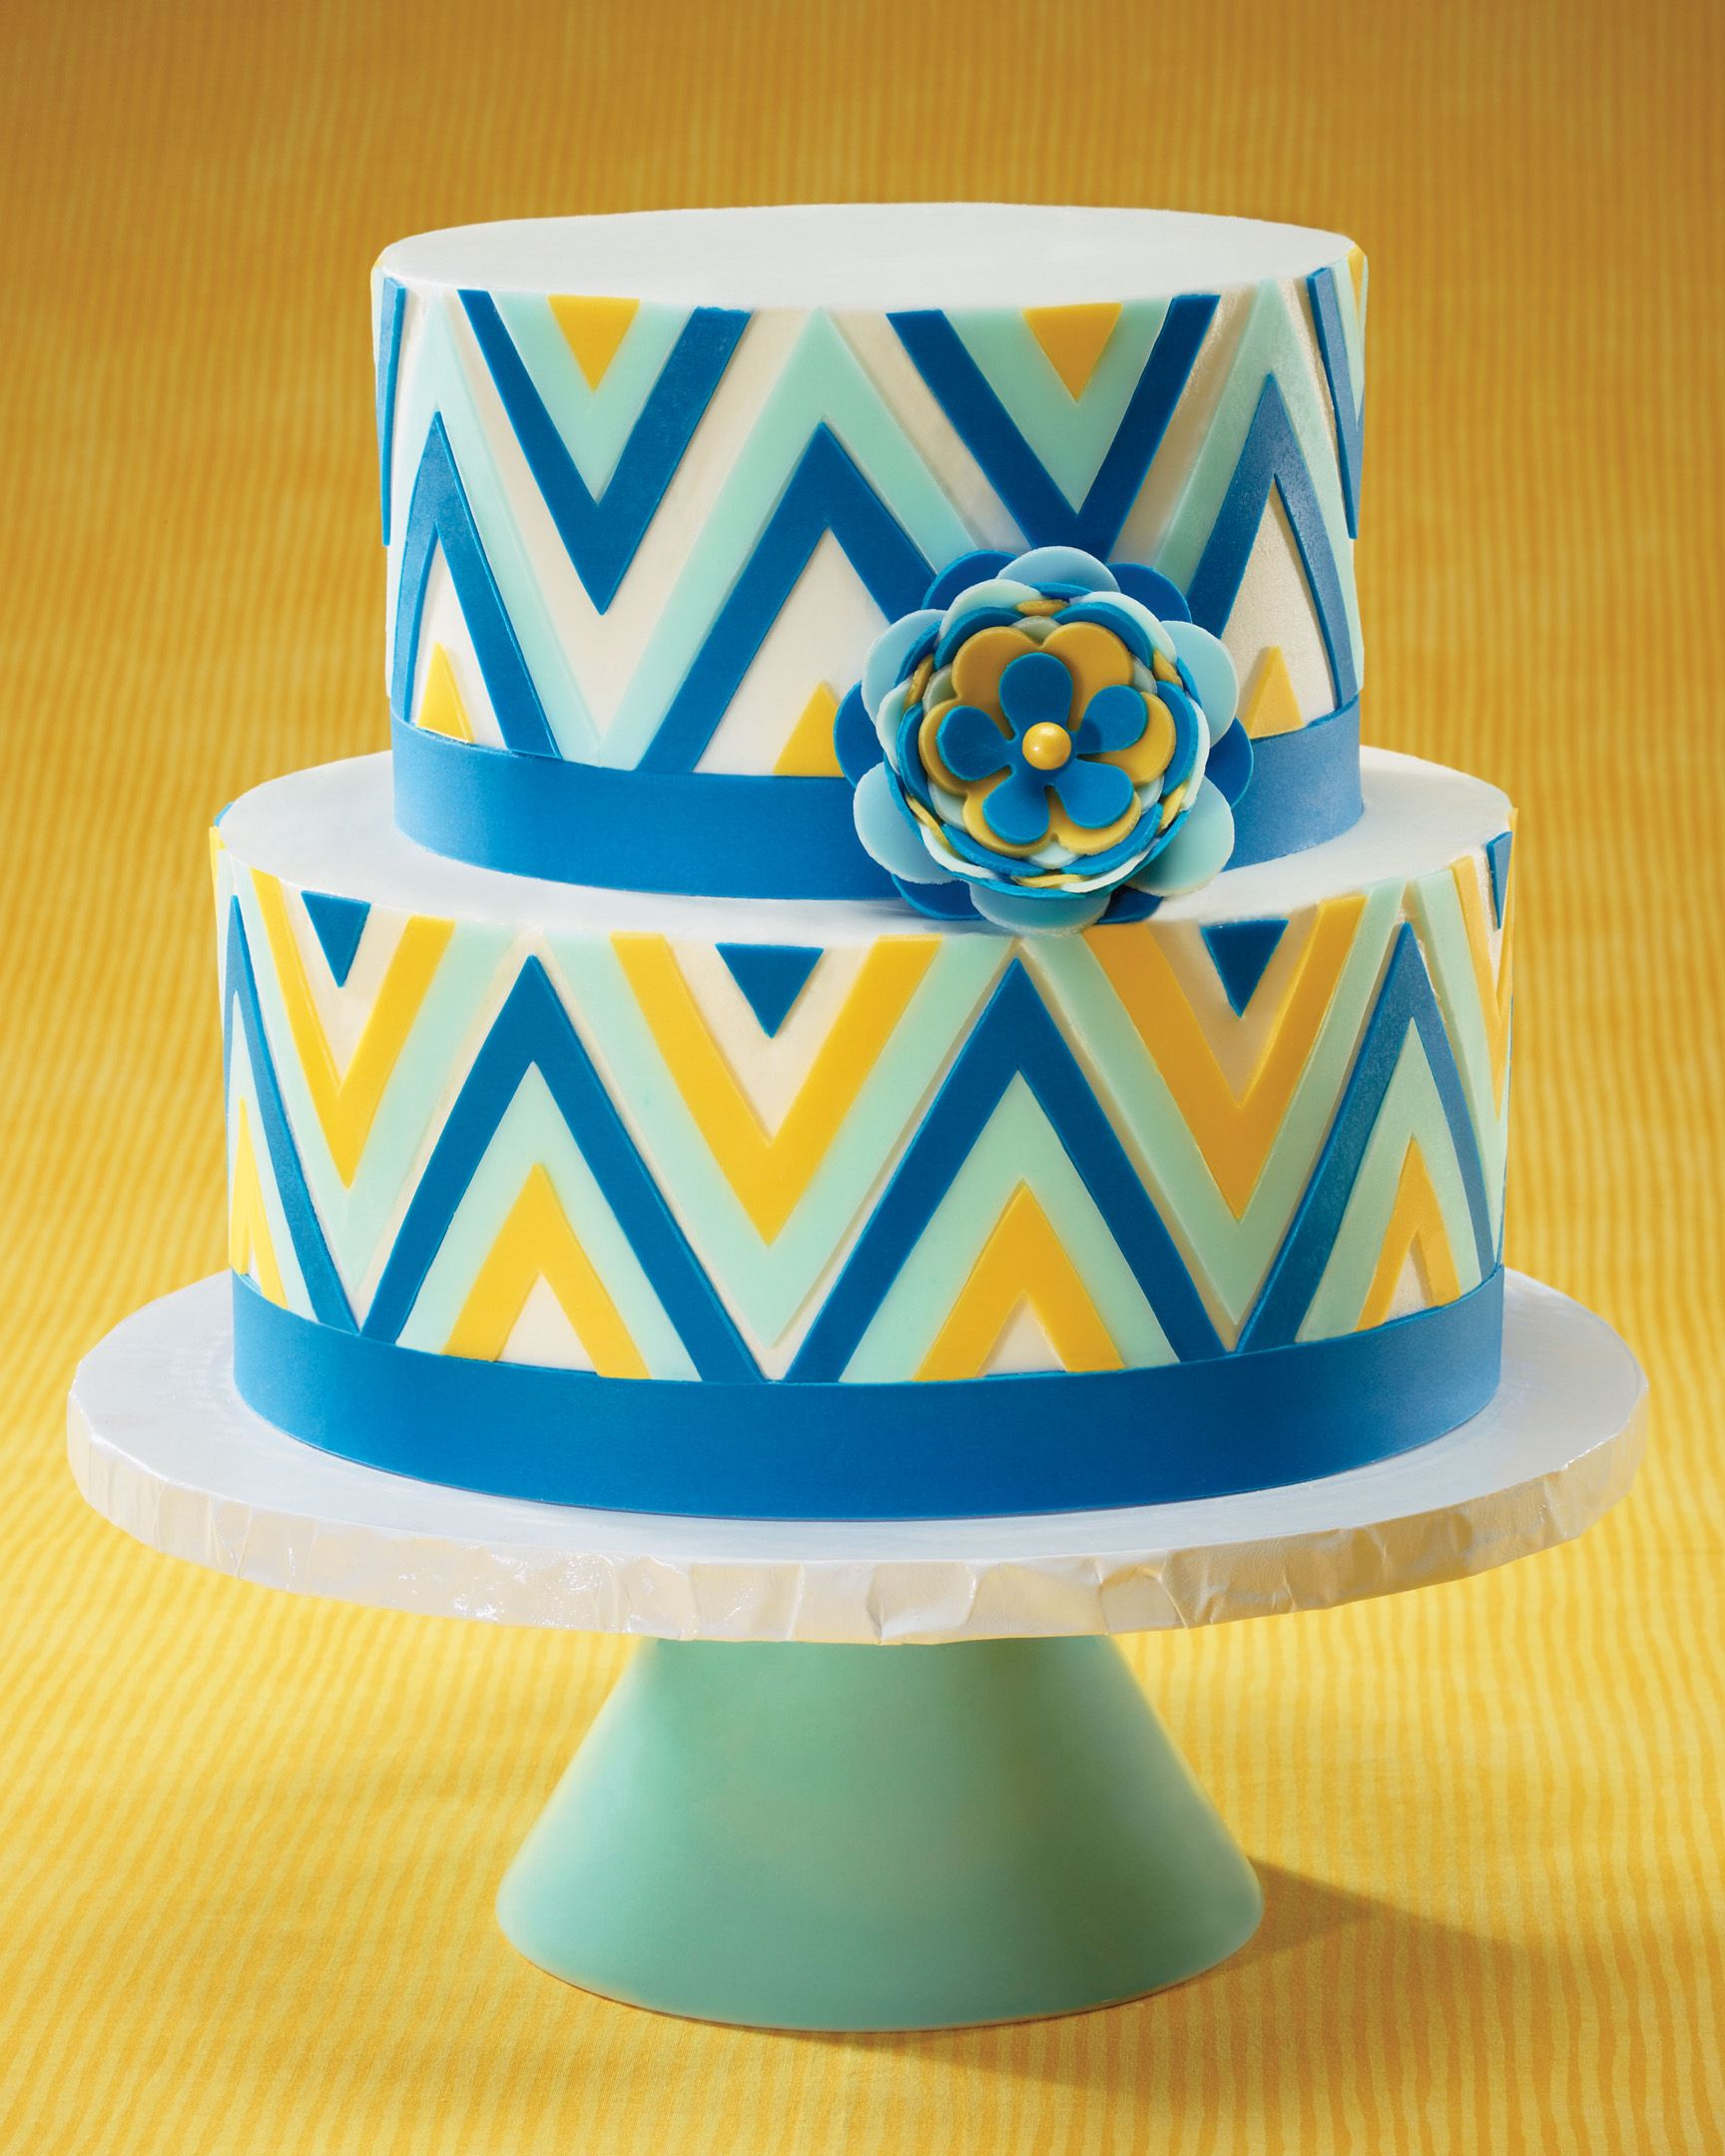 Cake Decorating Zig Zag : Gorgeous zig zag cake with pre-cut fondant strips Sweet ...